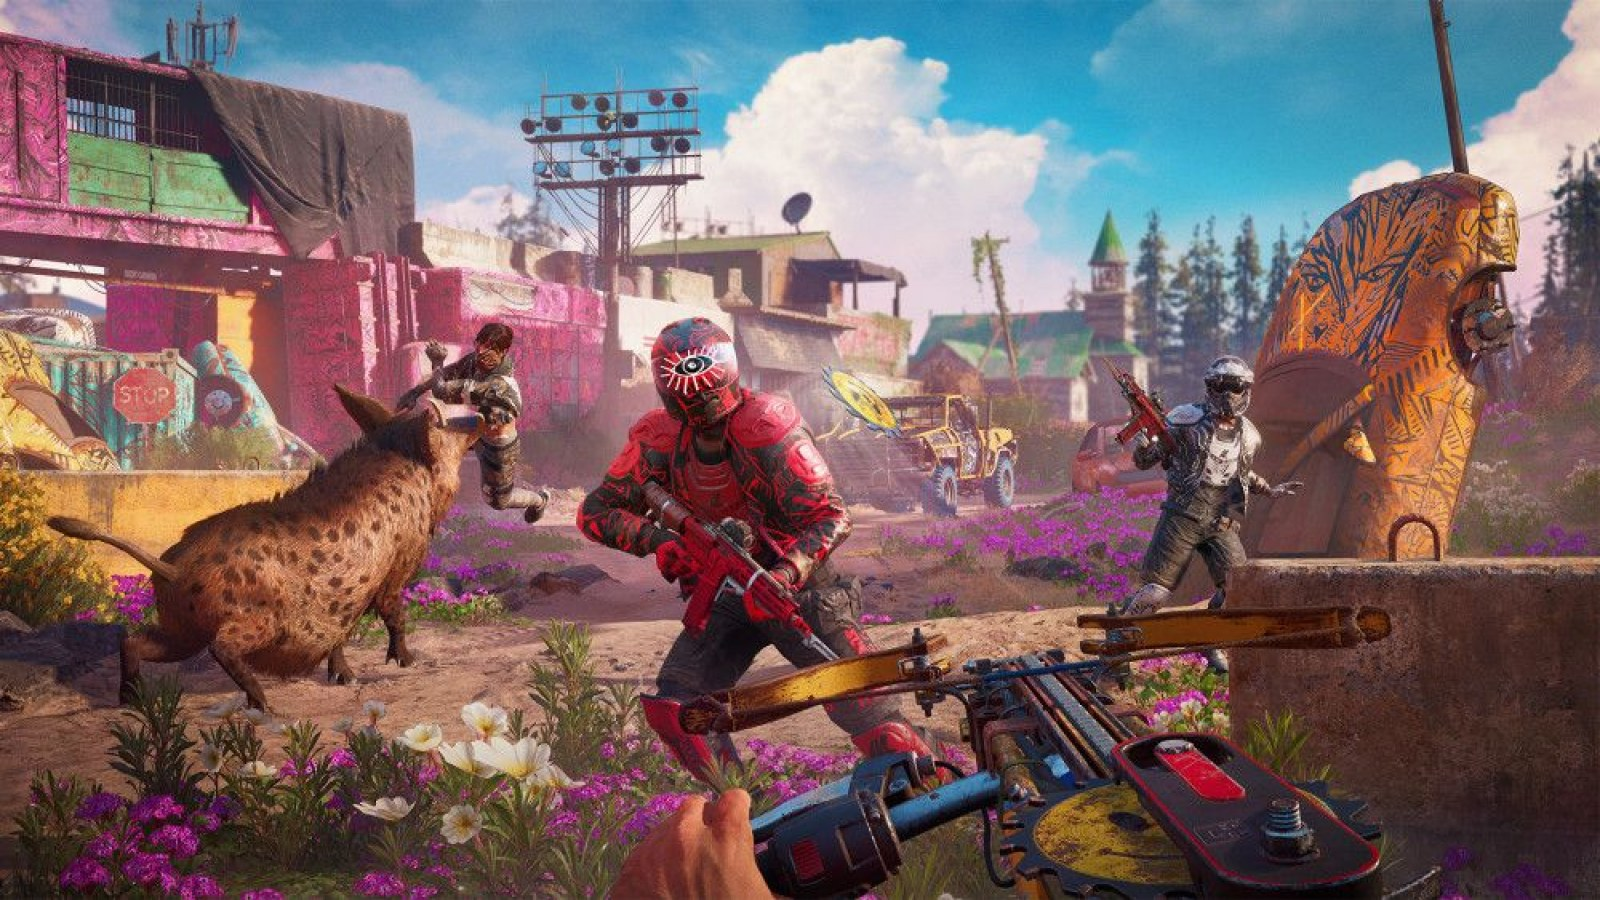 Far Cry 6 Release Date Plot Seemingly Leaks In A Tough Week For